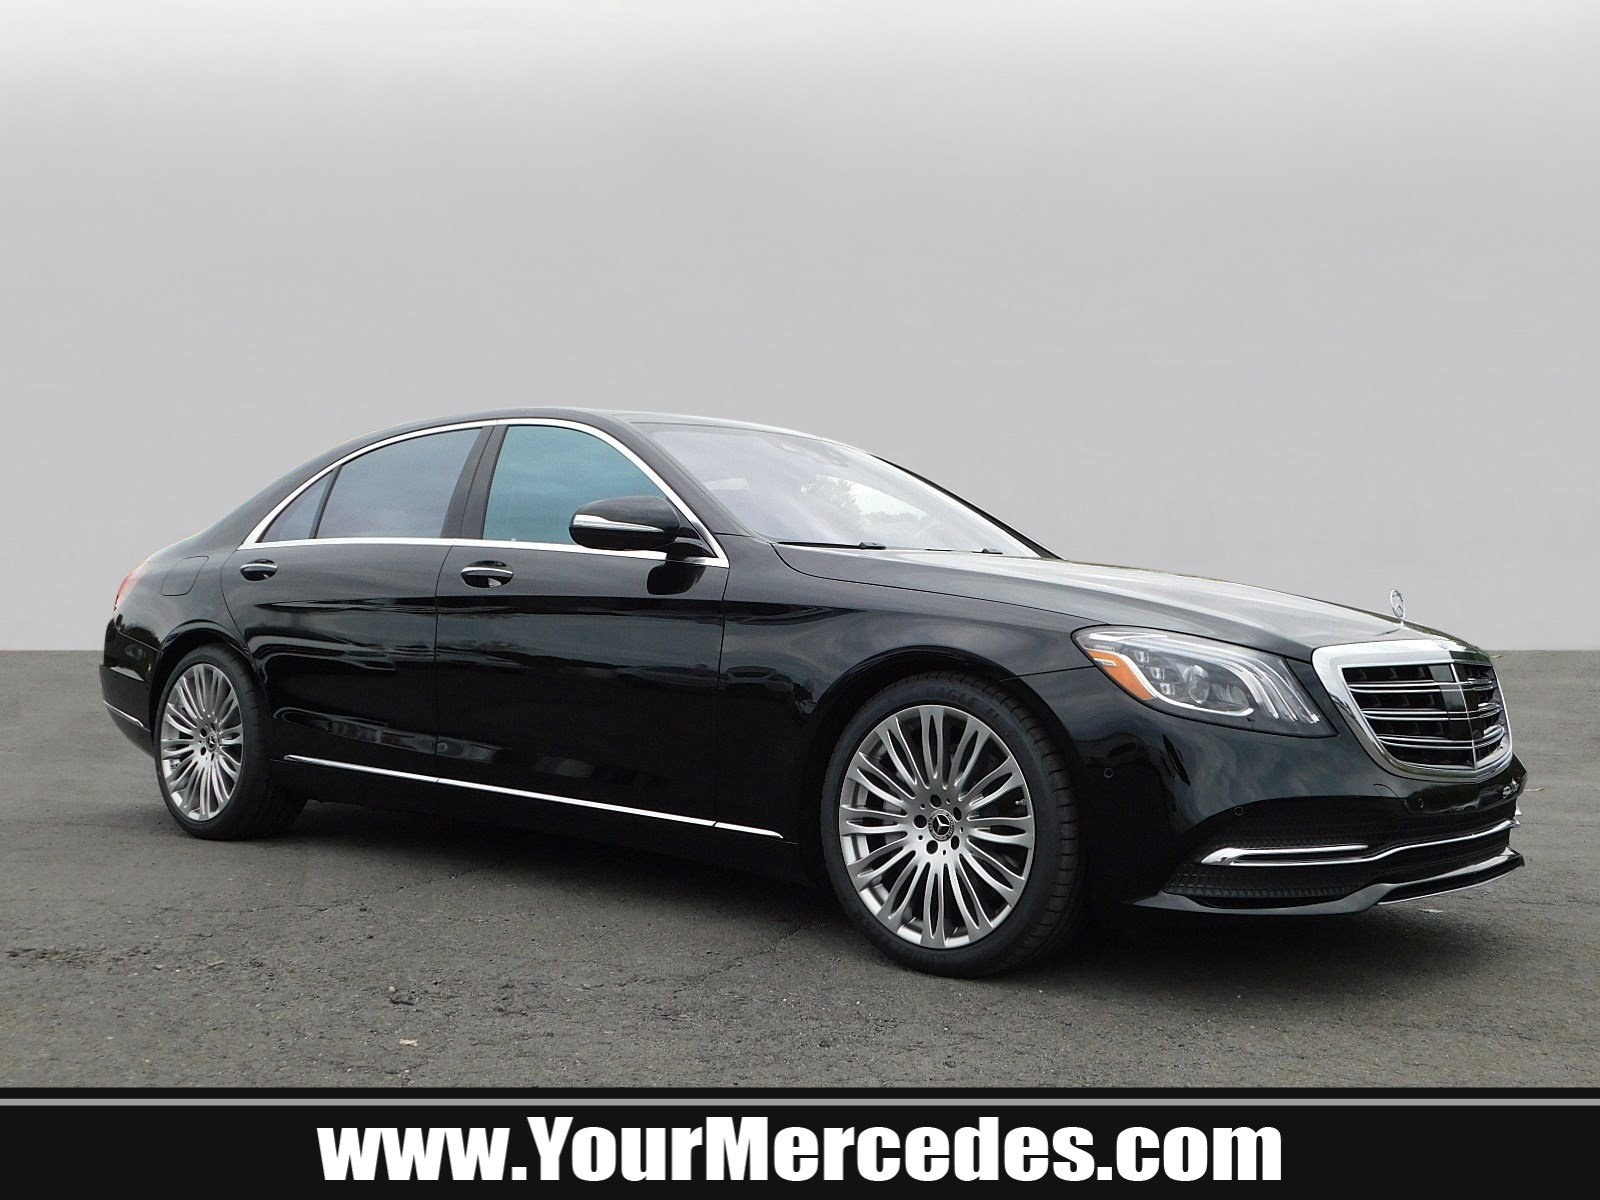 New 2019 Mercedes Benz S Class S 450 SEDAN in Fort Washington